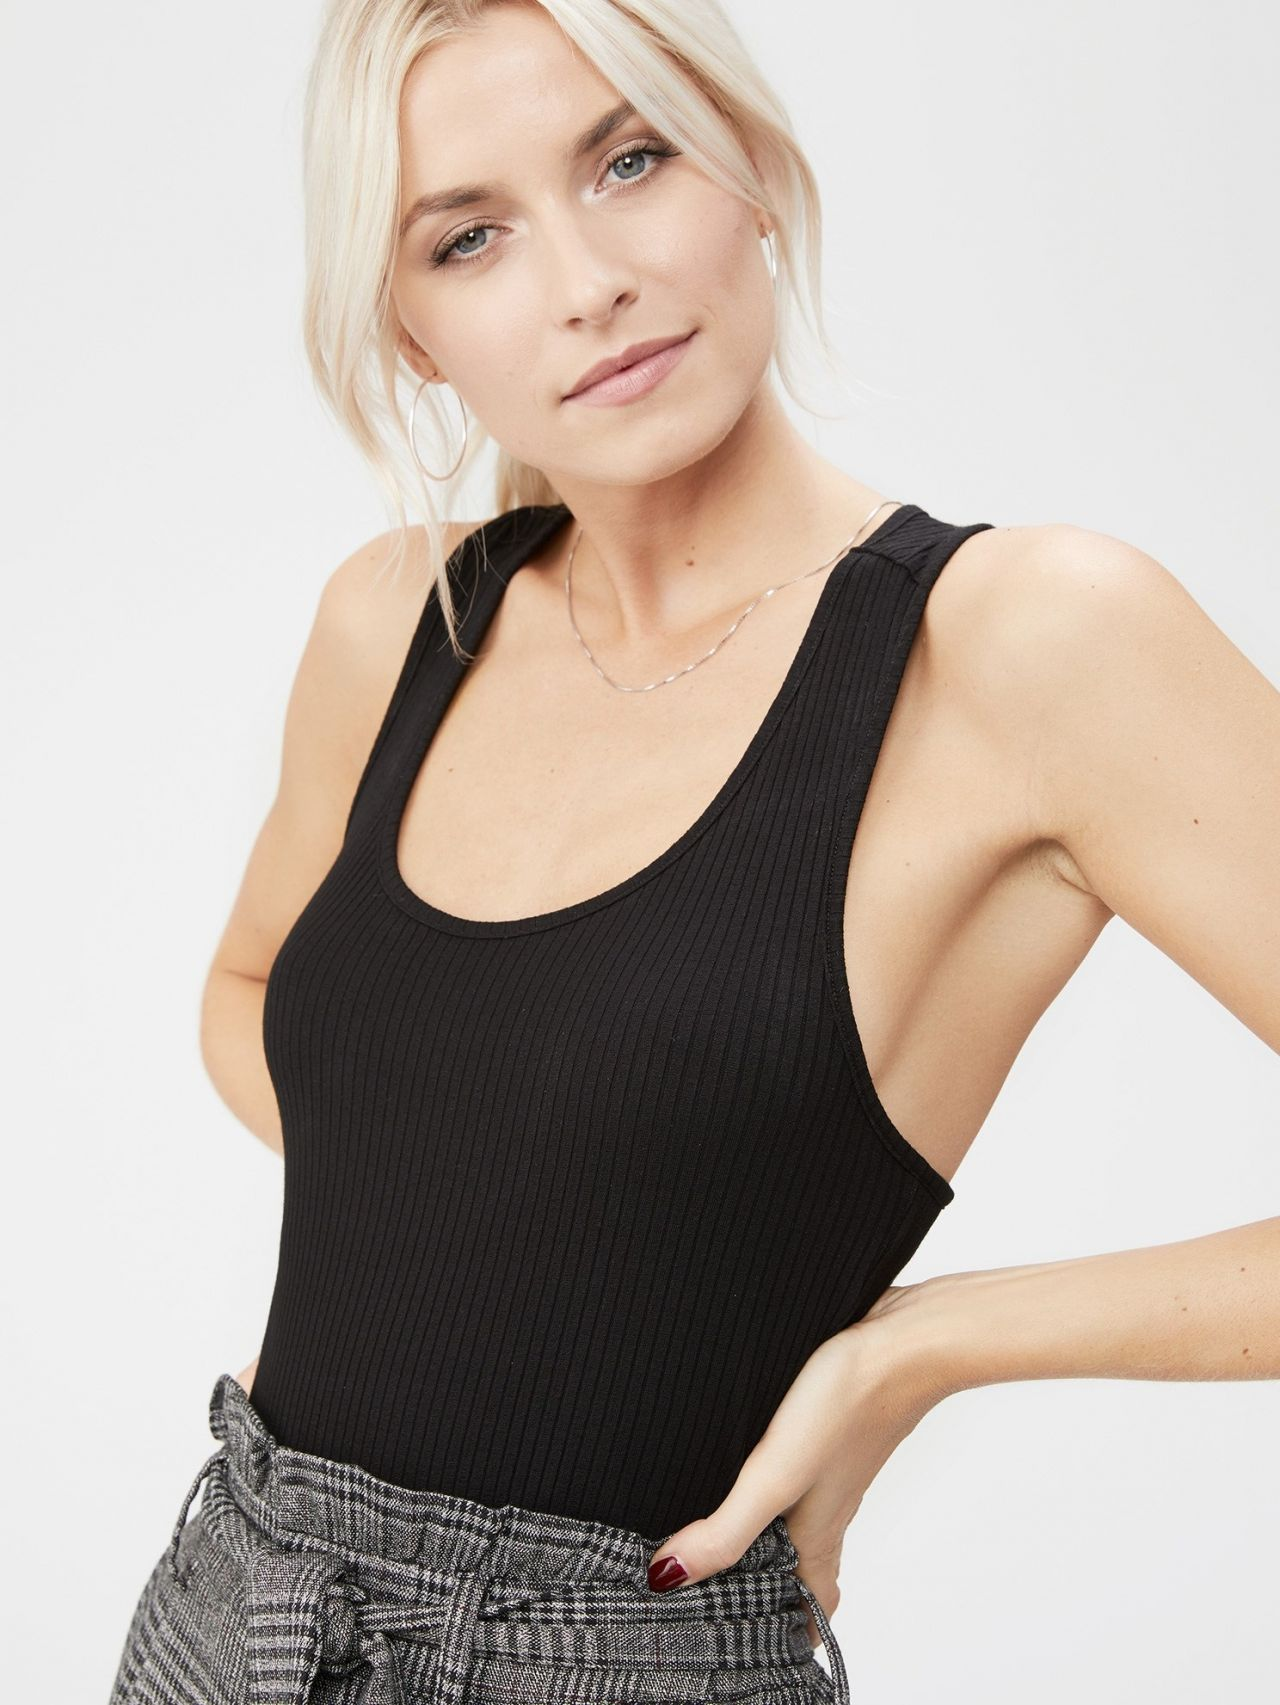 Lena Gercke Leger By Lena Basic Collection Winter 2018